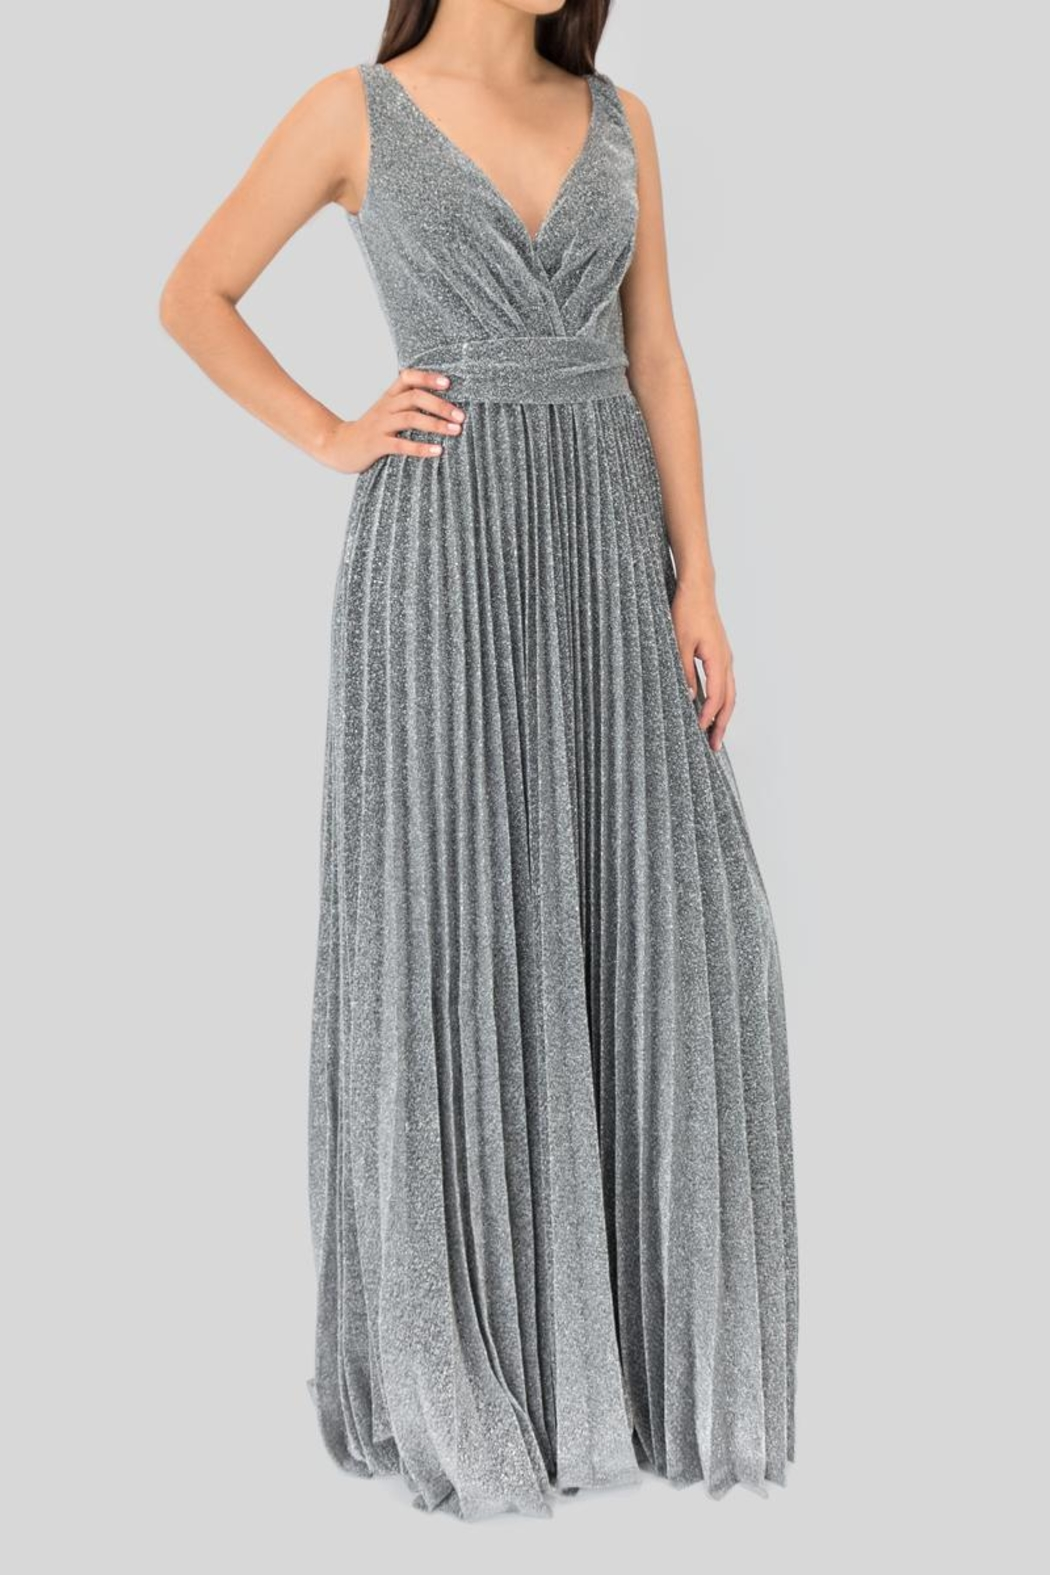 maniju Plated Silver Dress - Back Cropped Image